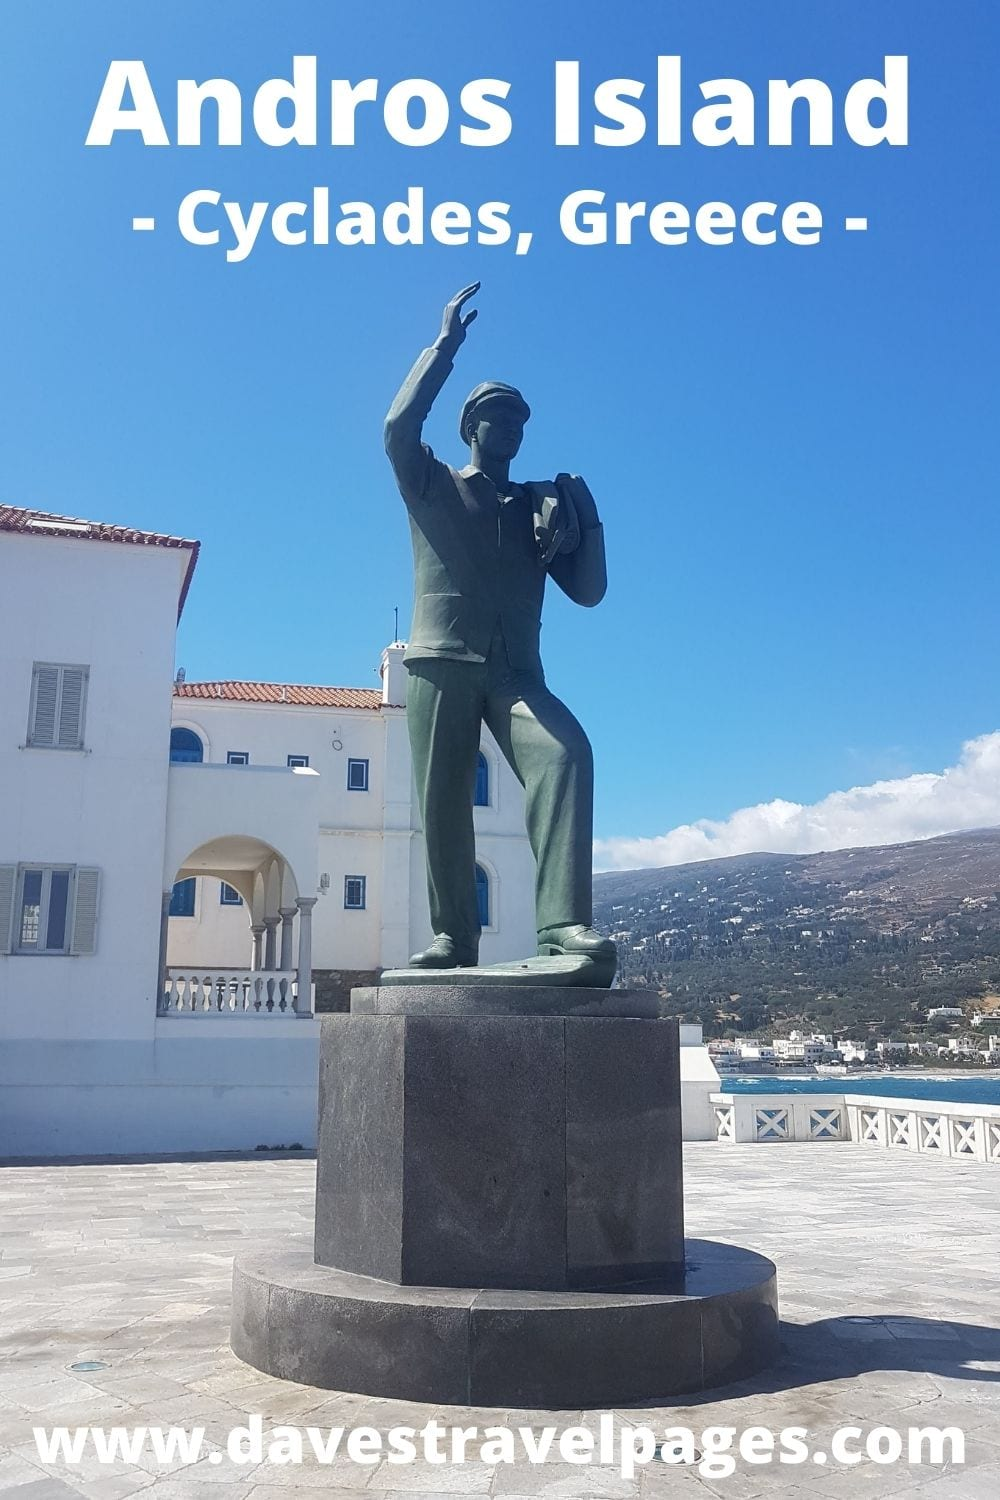 Visiting Andros island in the Cyclades of Greece